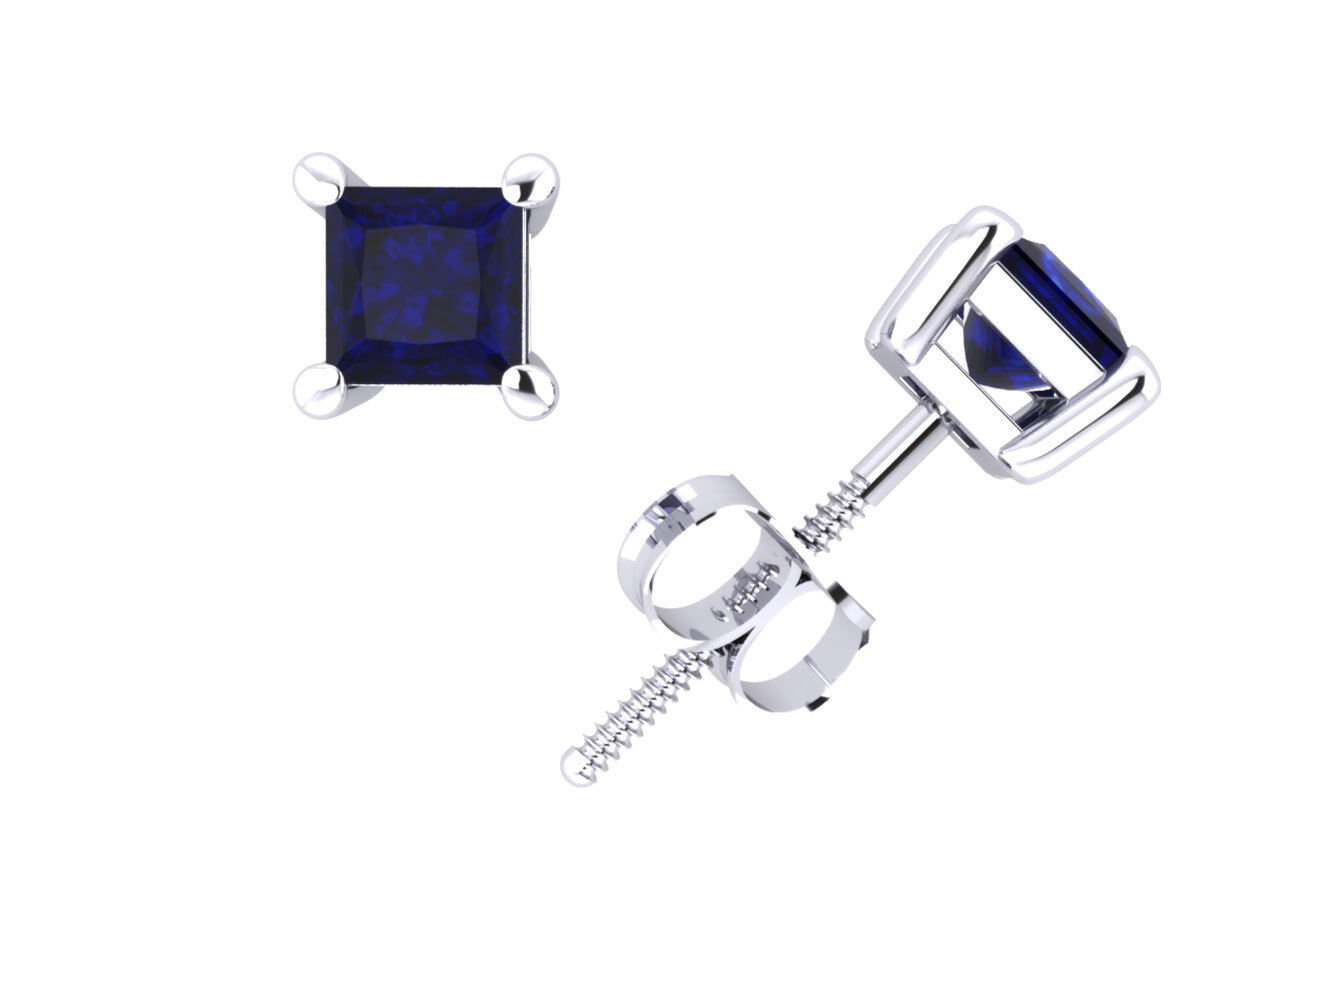 0.75Ctw Princess bluee Sapphire Basket Stud Earrings 14Karat gold Prong Setting